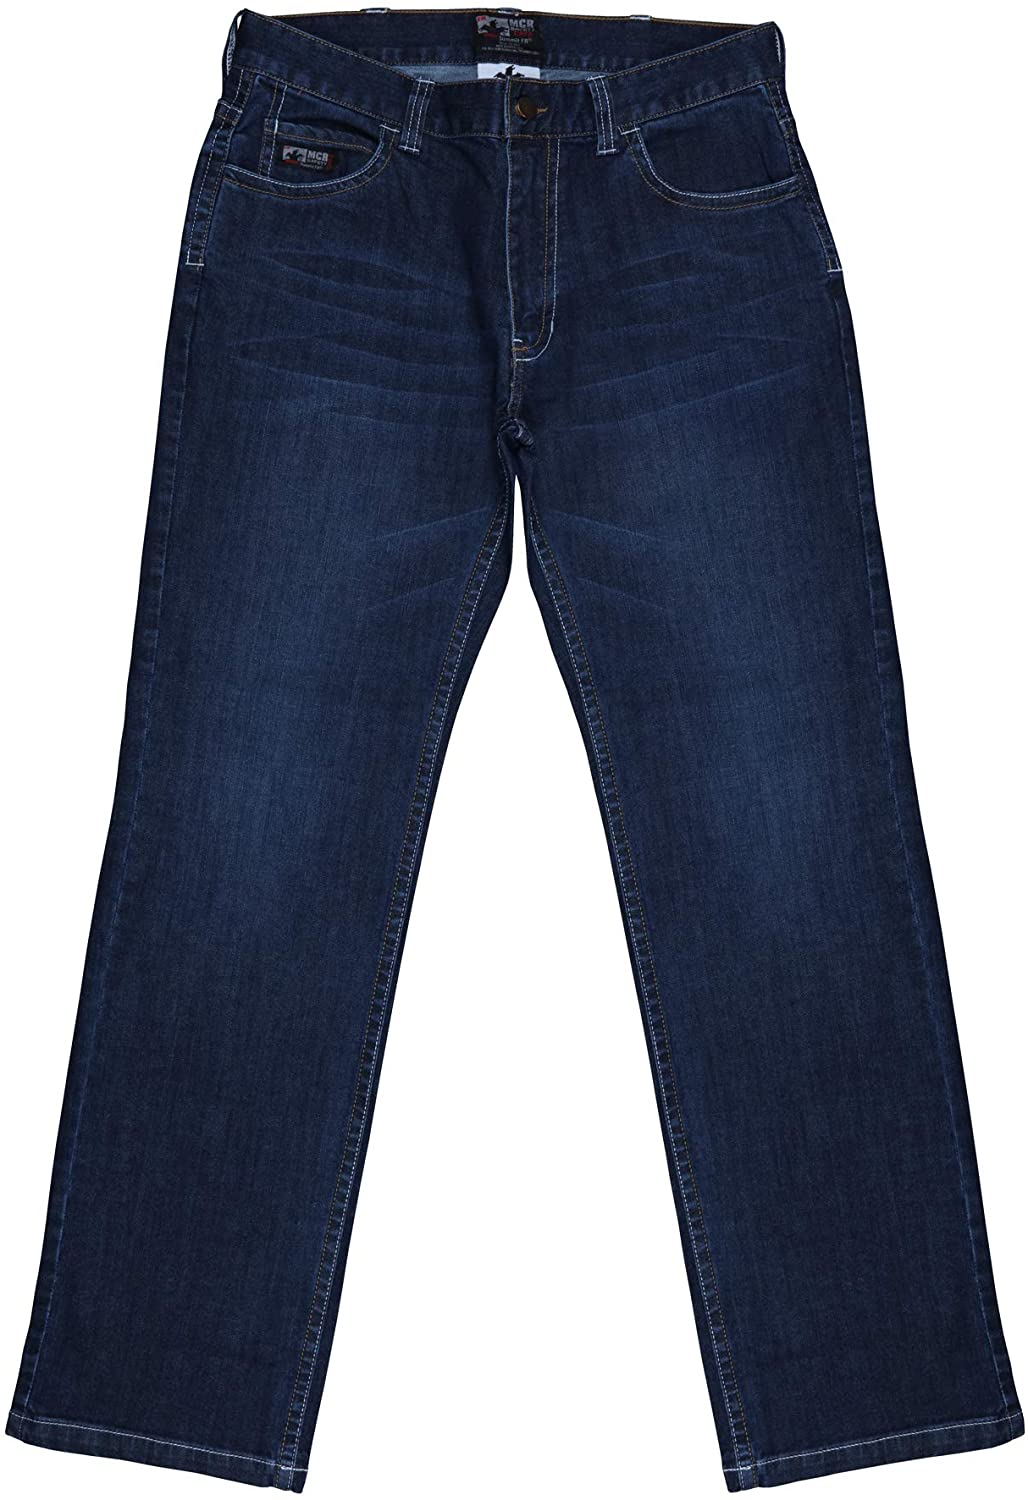 MCR Safety Flame Resistant FR Jeans, Relaxed Lightweight, Men's FR Work Jeans, 42-36